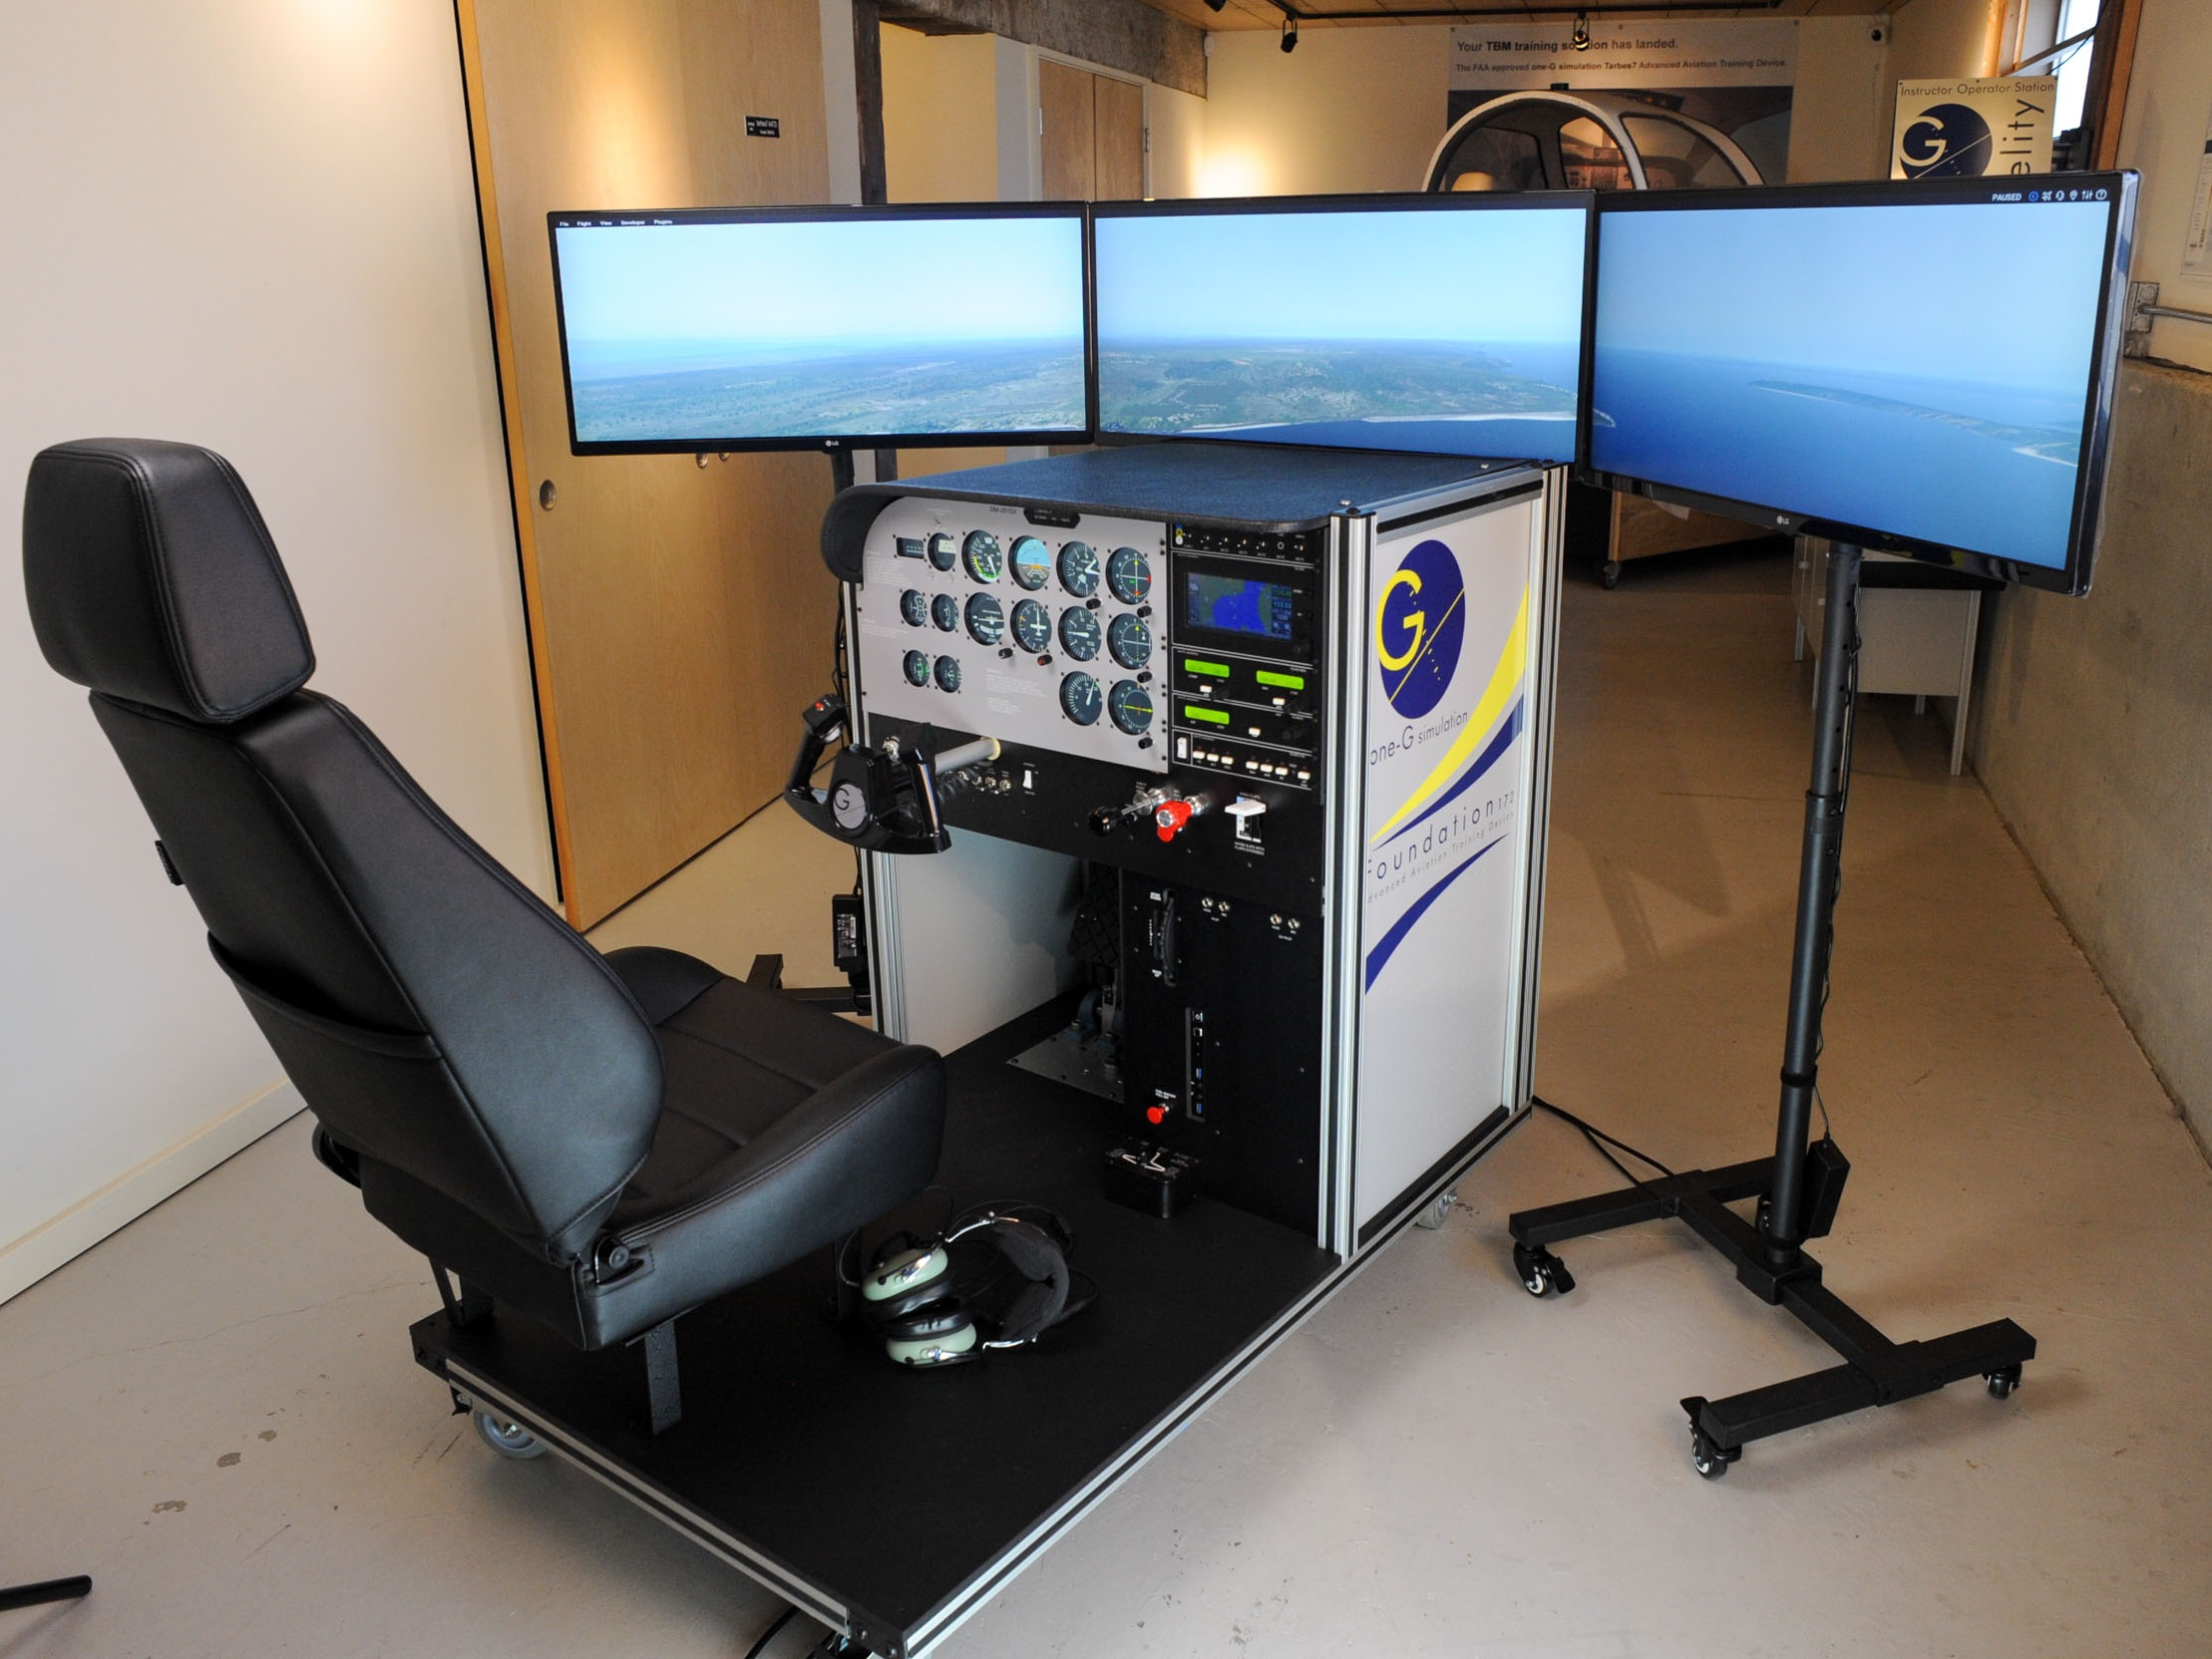 The Simulators:one-G Foundation™ and Foundation 1000™ - Based on the popular Cessna® single engine series aircraft, the one-G Foundation™ is a model specific AATD that is designed as a platform for integrated instruction for all pilots, from student through commercial.The most realistic touch & feel interaction of any flight simulator in its class. And with its intuitive instructor operation station, ease of use and durability, the one-G Foundation's™ ability to facilitate a seamless transfer of learning between the simulator and the airplane is remarkable.